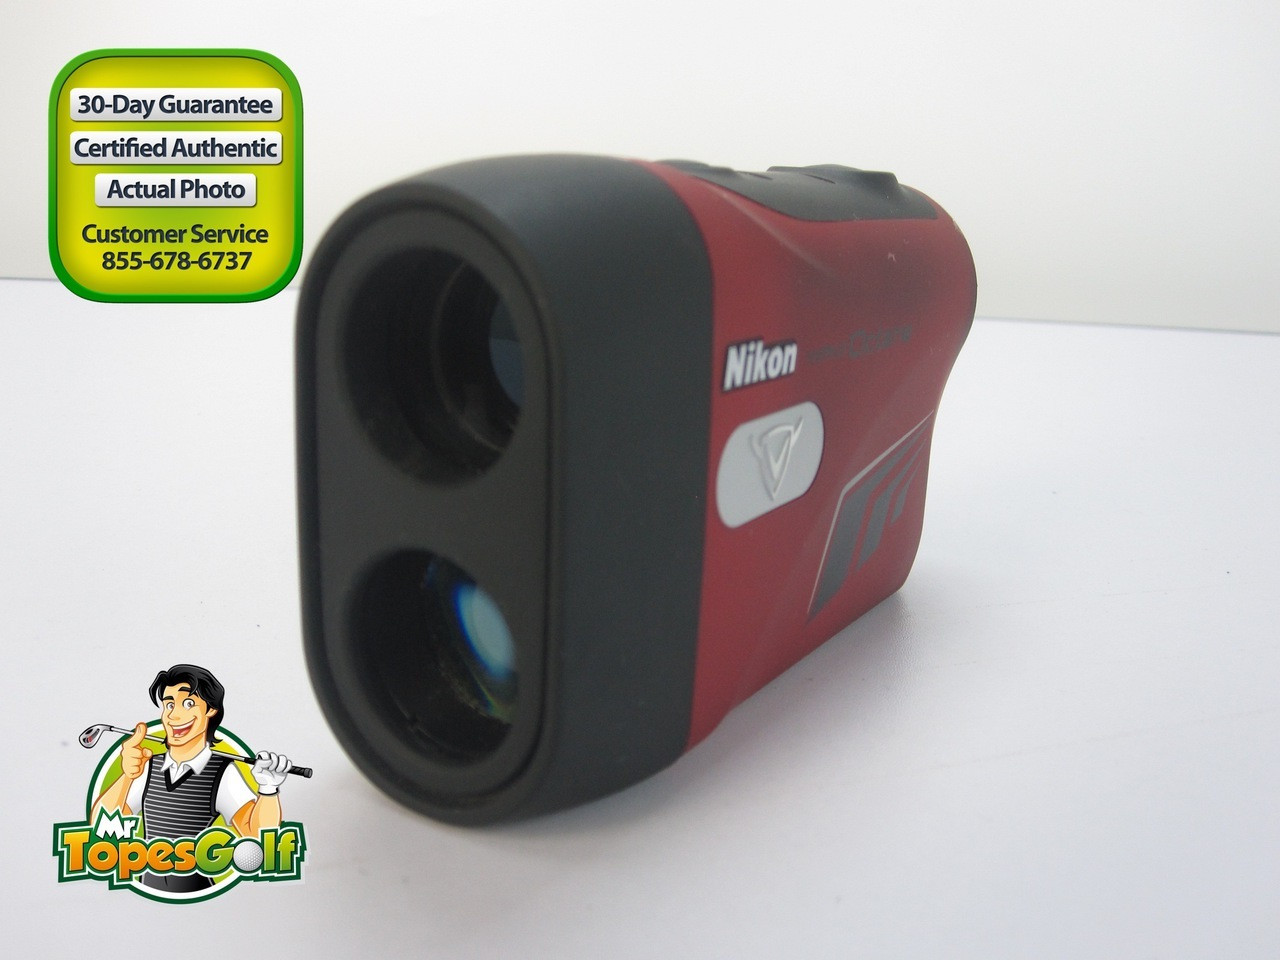 Callaway Nikon Diablo Octane Laser Golf Rangefinder With And Battery